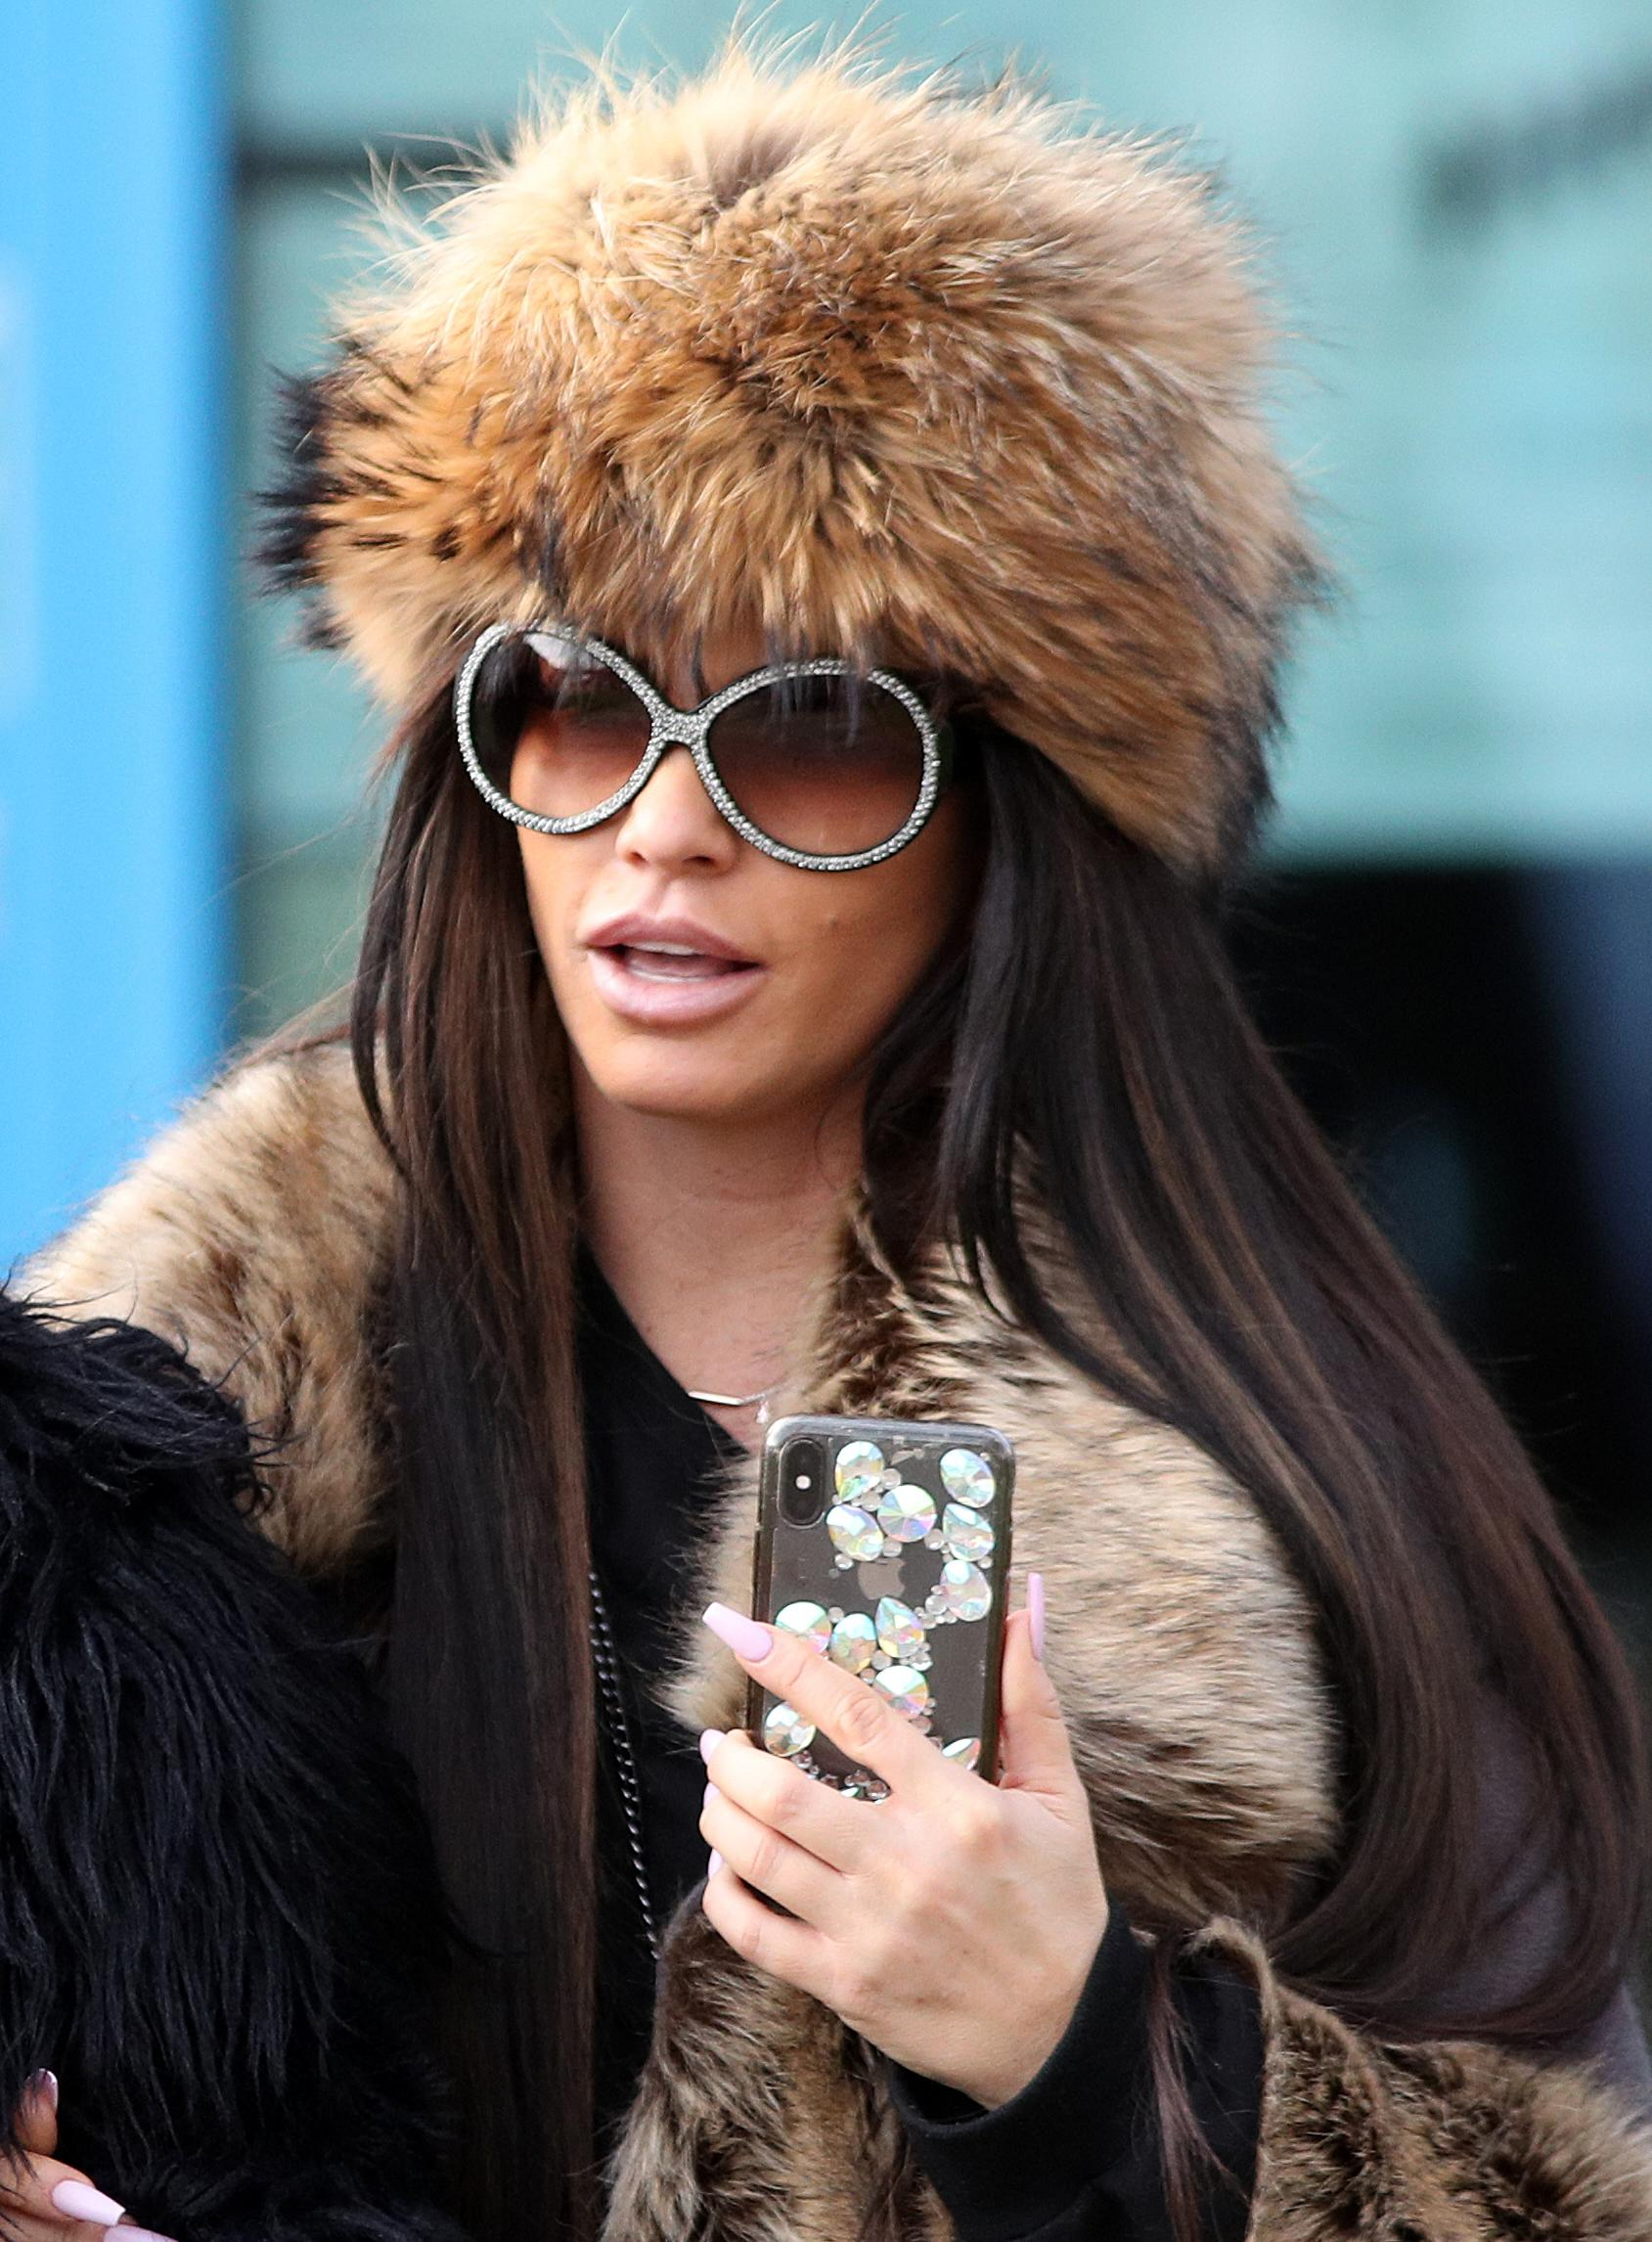 Katie Price leaves Crawley Magistrates' Court after she was banned from driving for three months and fined �1,100 for driving while disqualified and without insurance on the A24 near her home in West Sussex on July 25.